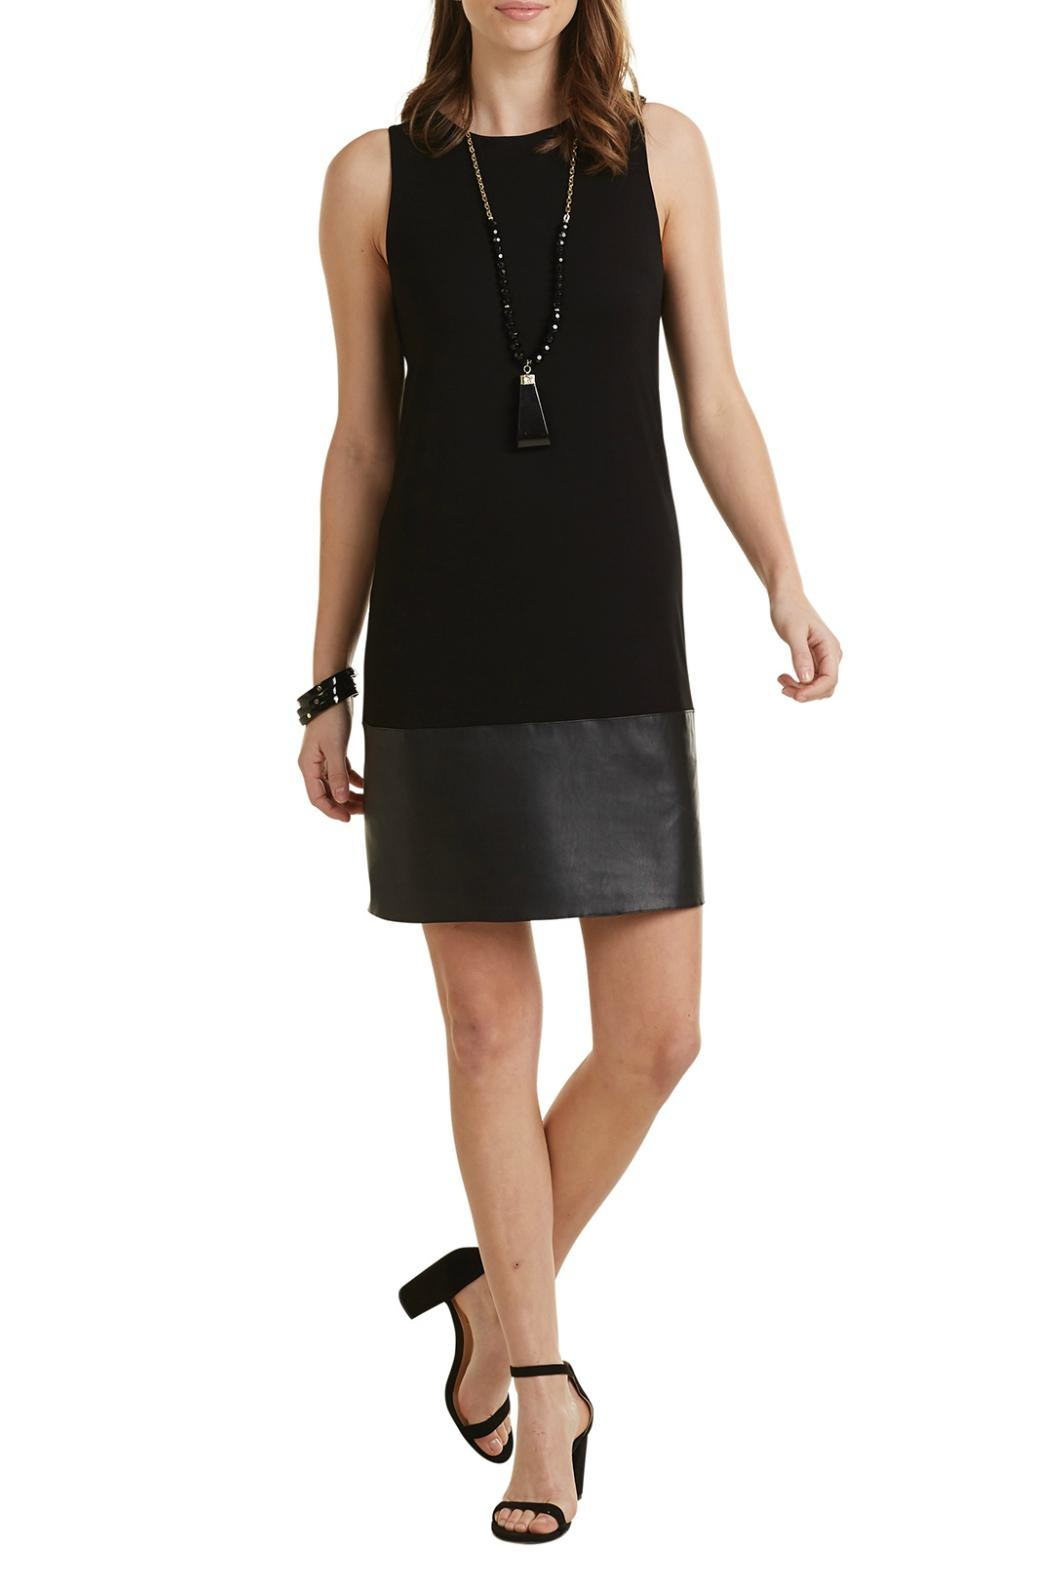 Mud Pie Black Leather Shift Dress - Main Image